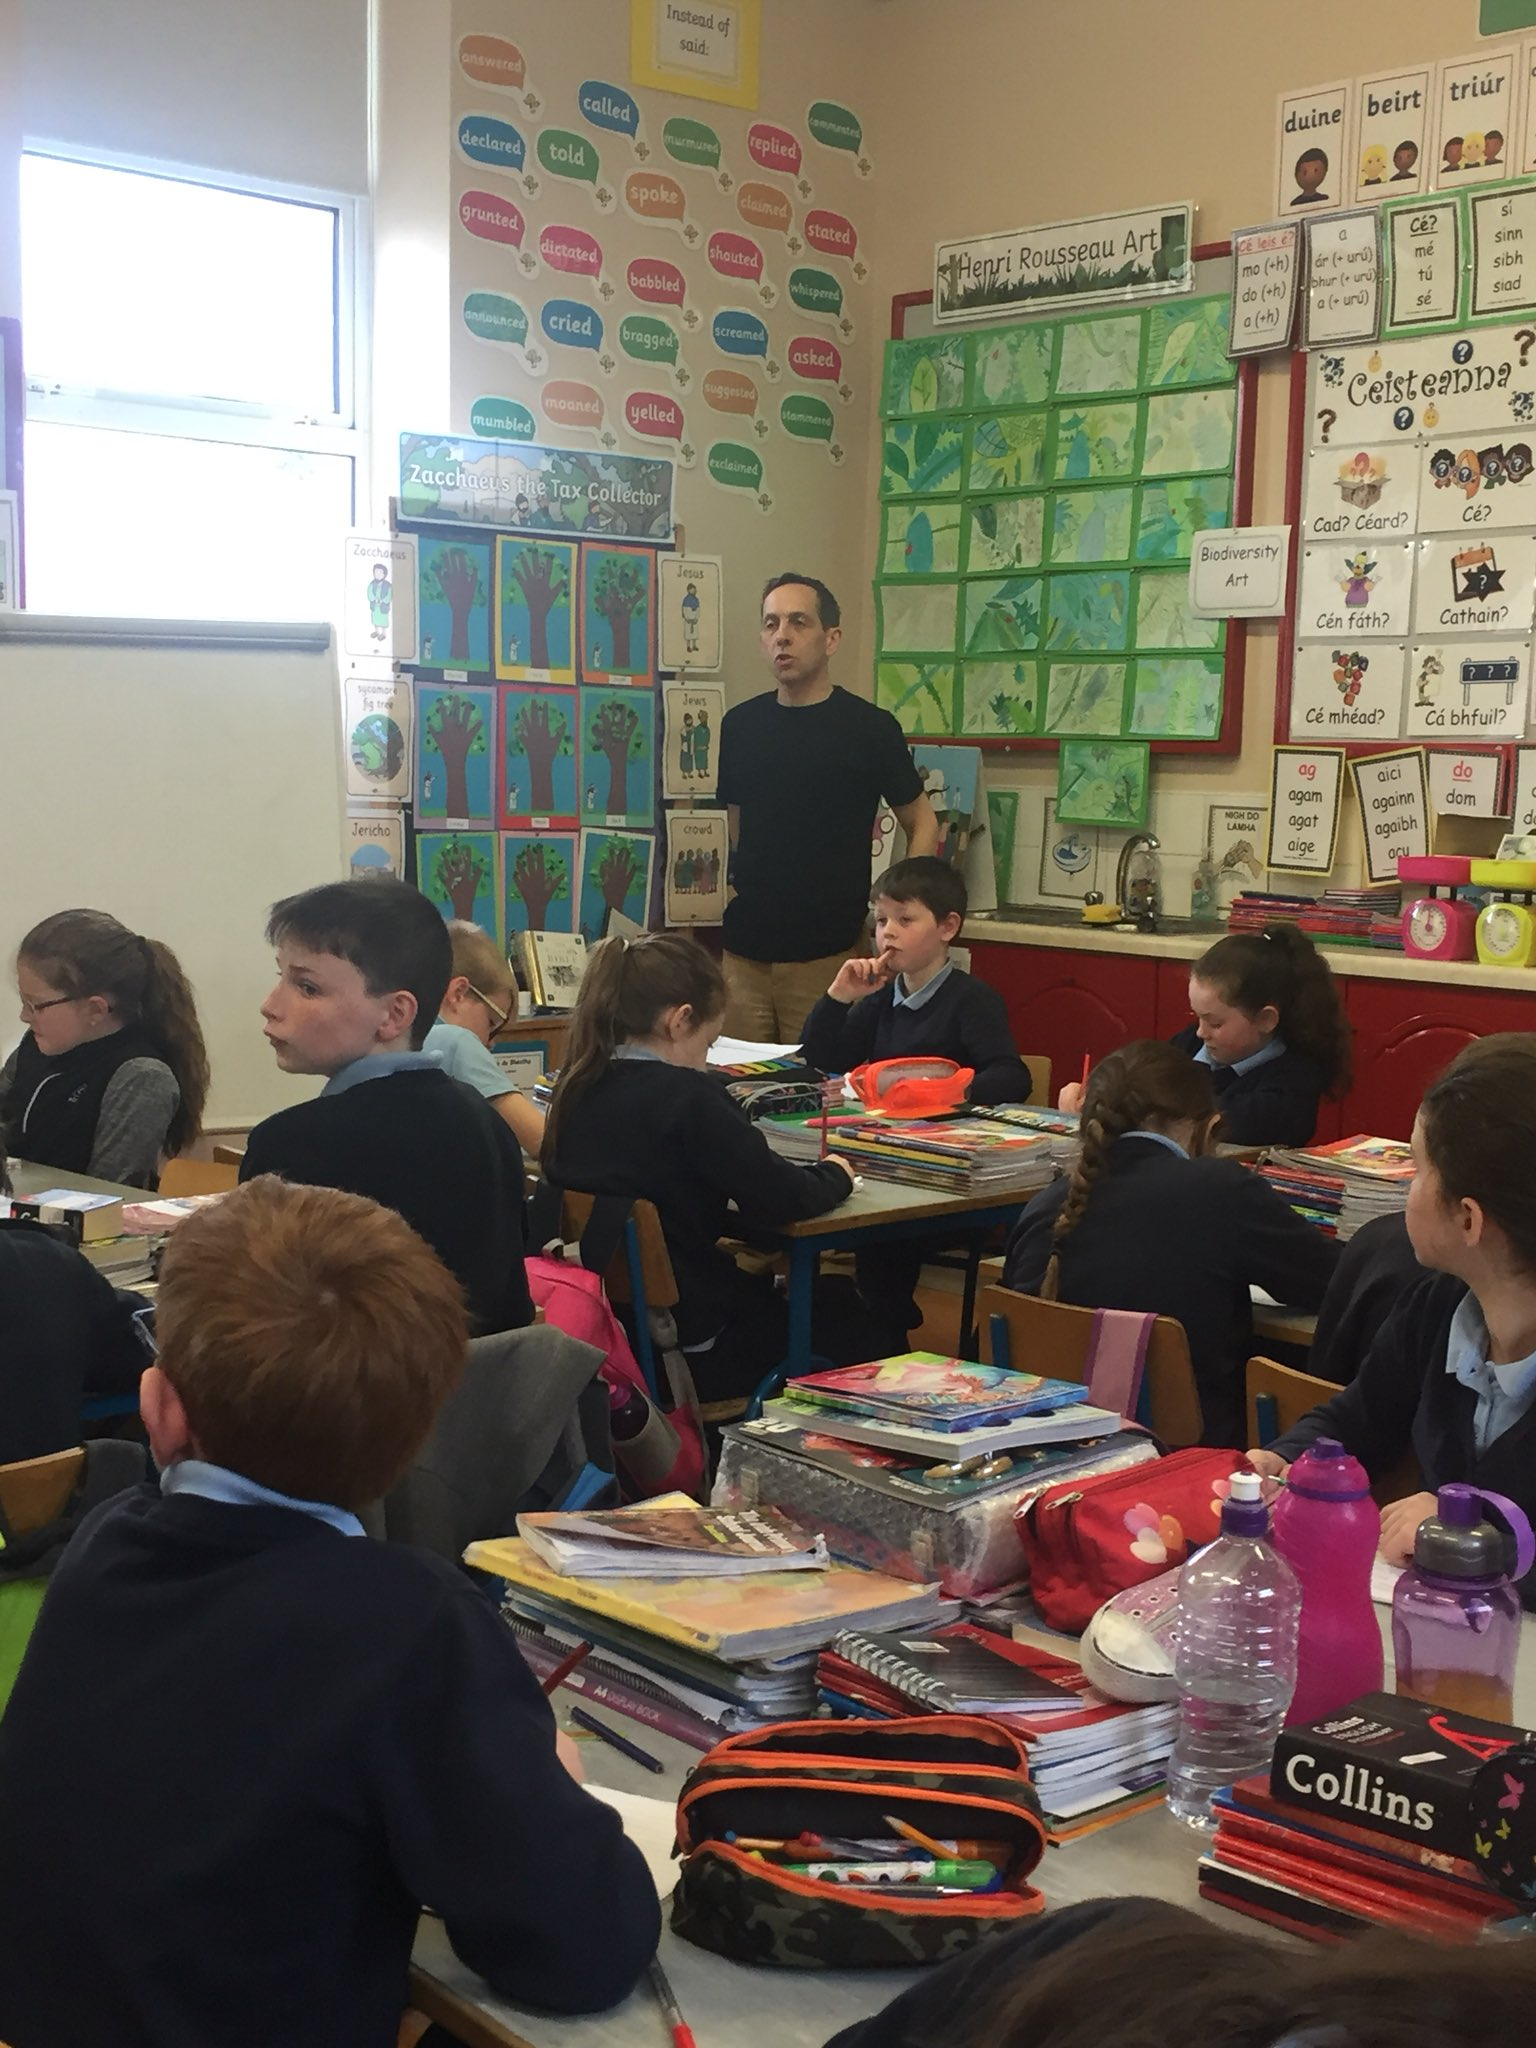 Castleplunkett NS On Twitter We Were Really Inspired By Poet And Author Gerry Boland Thoroughly Enjoyed Doing Poetry Creative Story Writing With